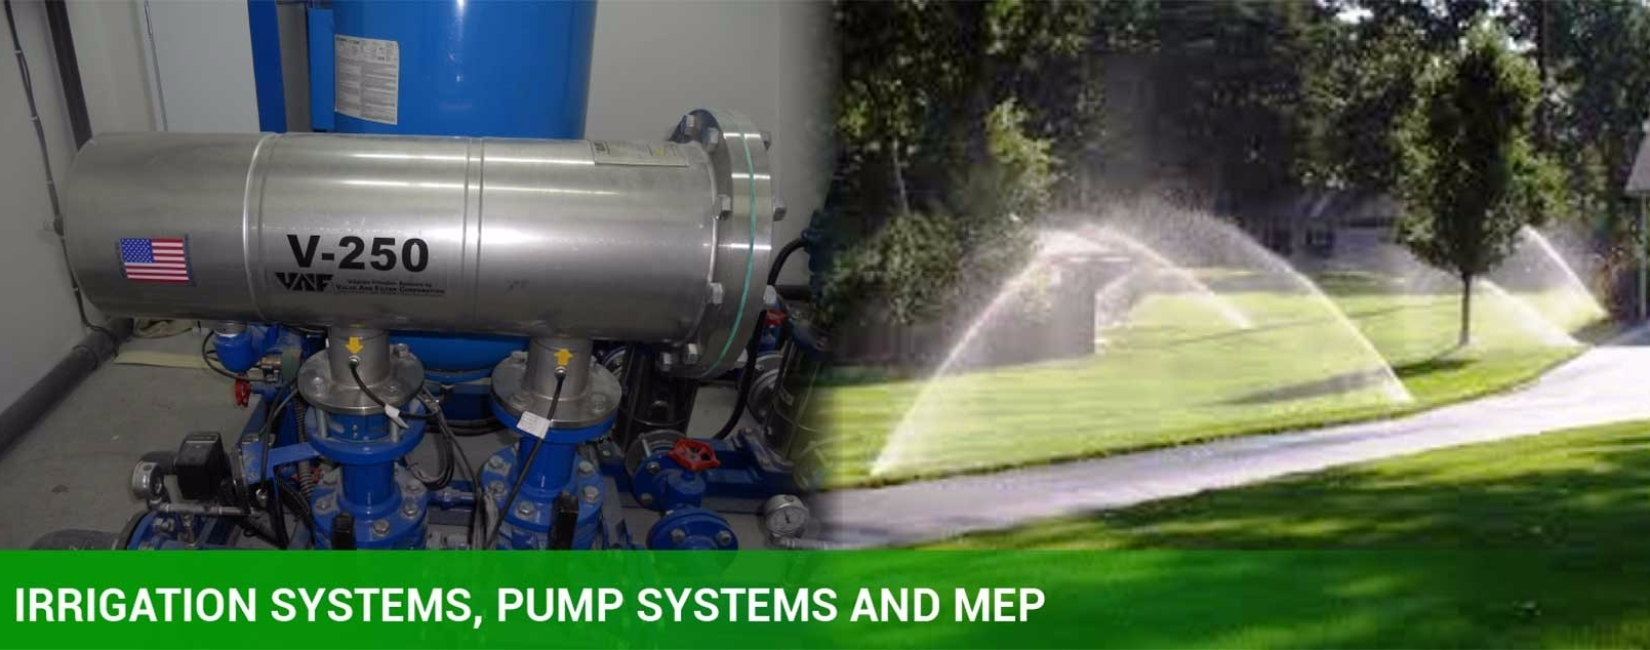 irrigation-systems,-pump-systems-and-mep